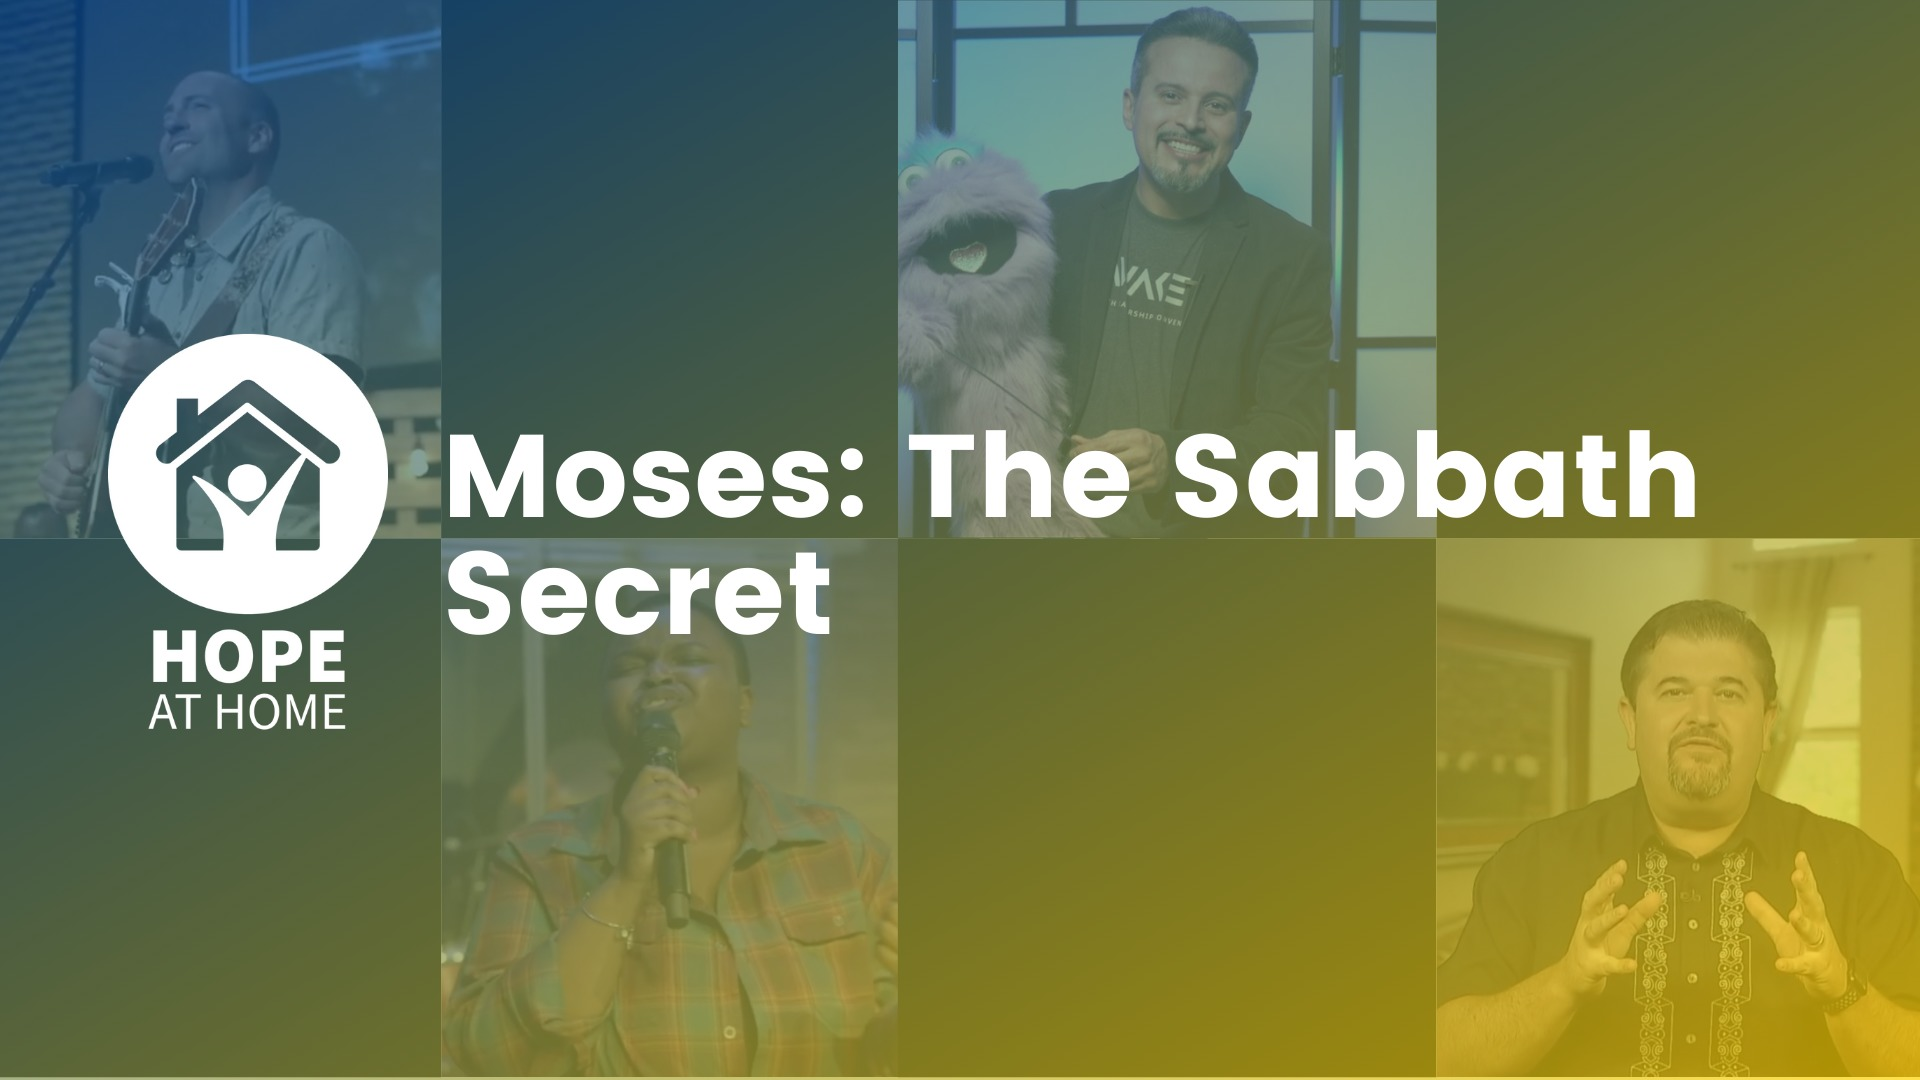 Moses: The Sabbath Secret